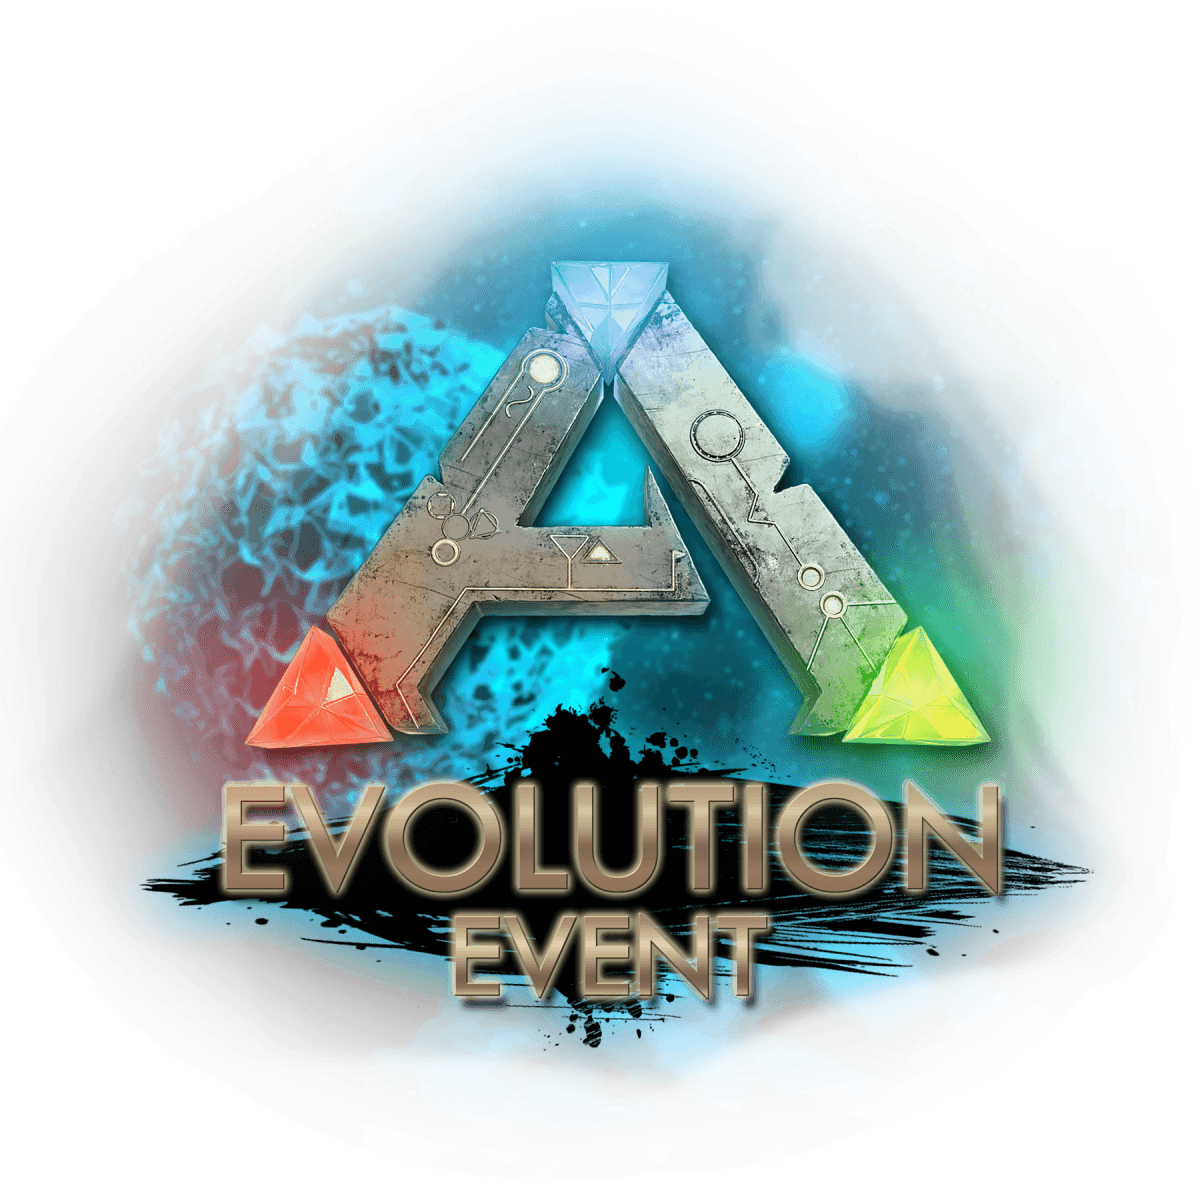 Evolution Event: BIRTHDAY!